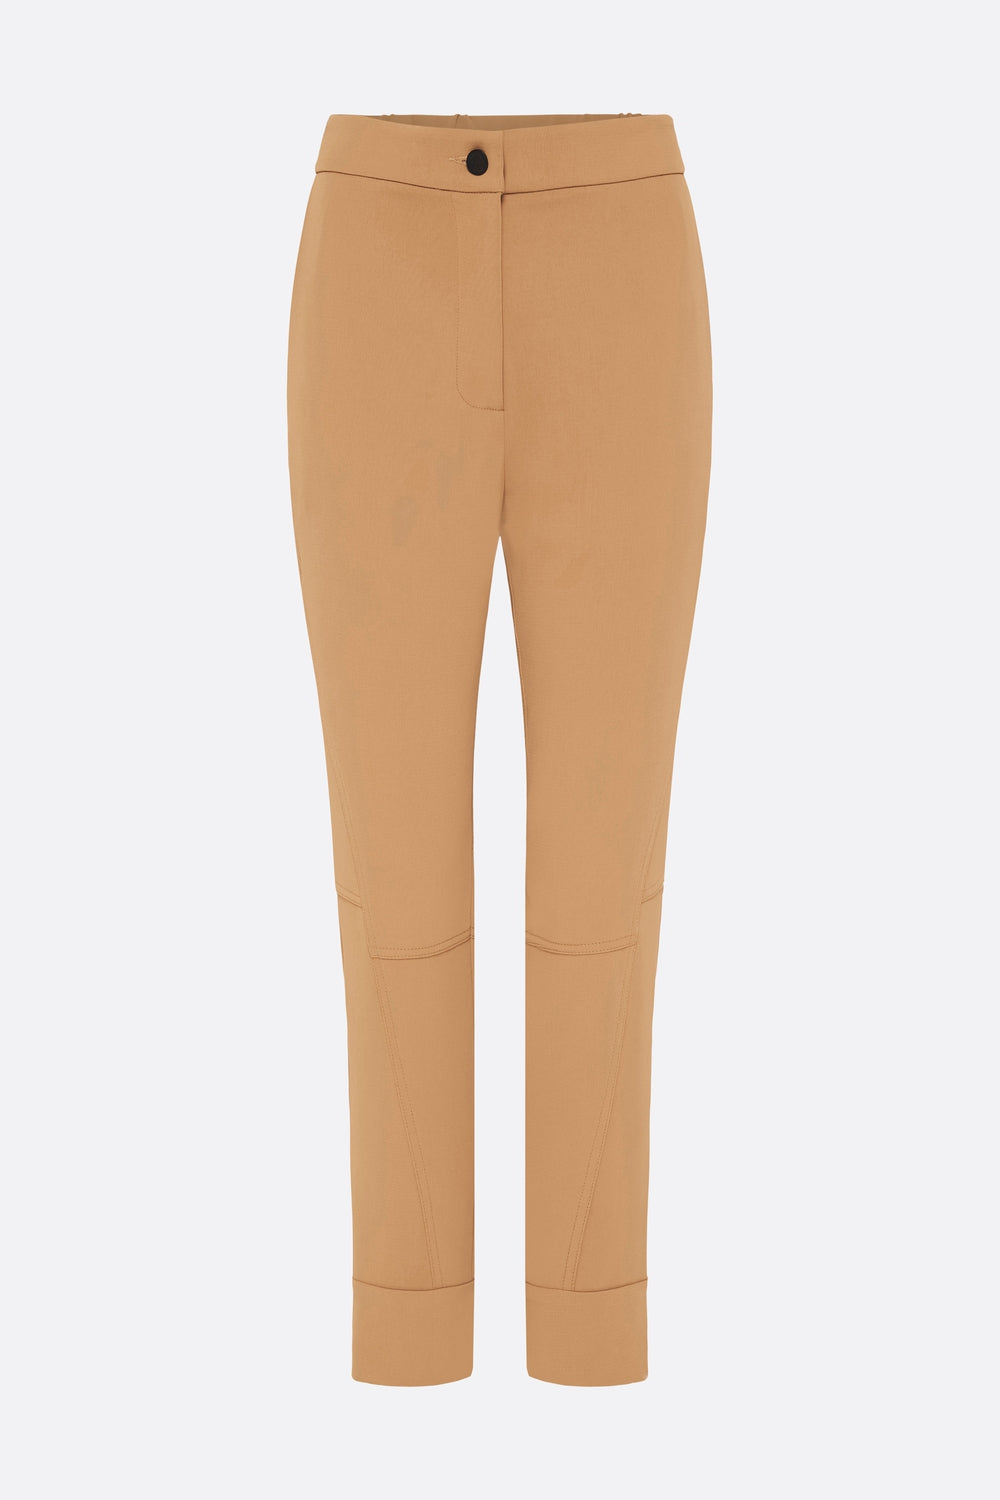 INSTANT CONNECTION CROP PANT